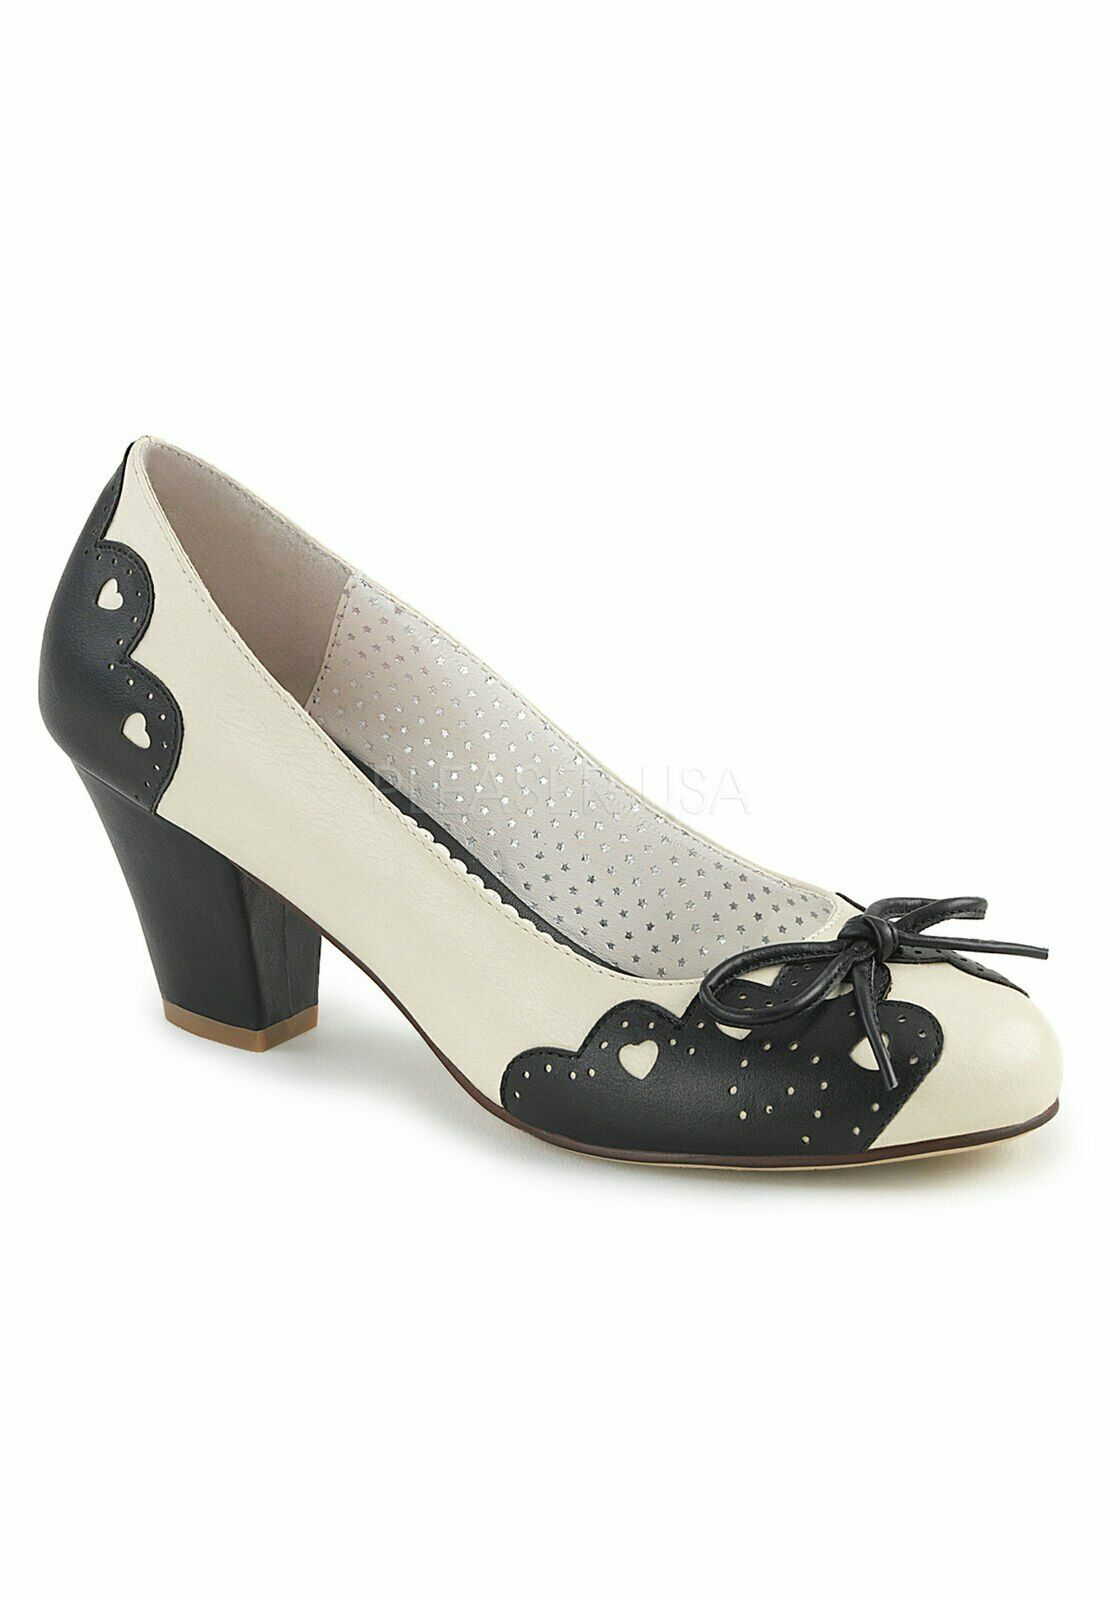 Pin Up Couture WIGGLE-17 2 1 2 Inch Cuben Heel Pump With Bow at Toe